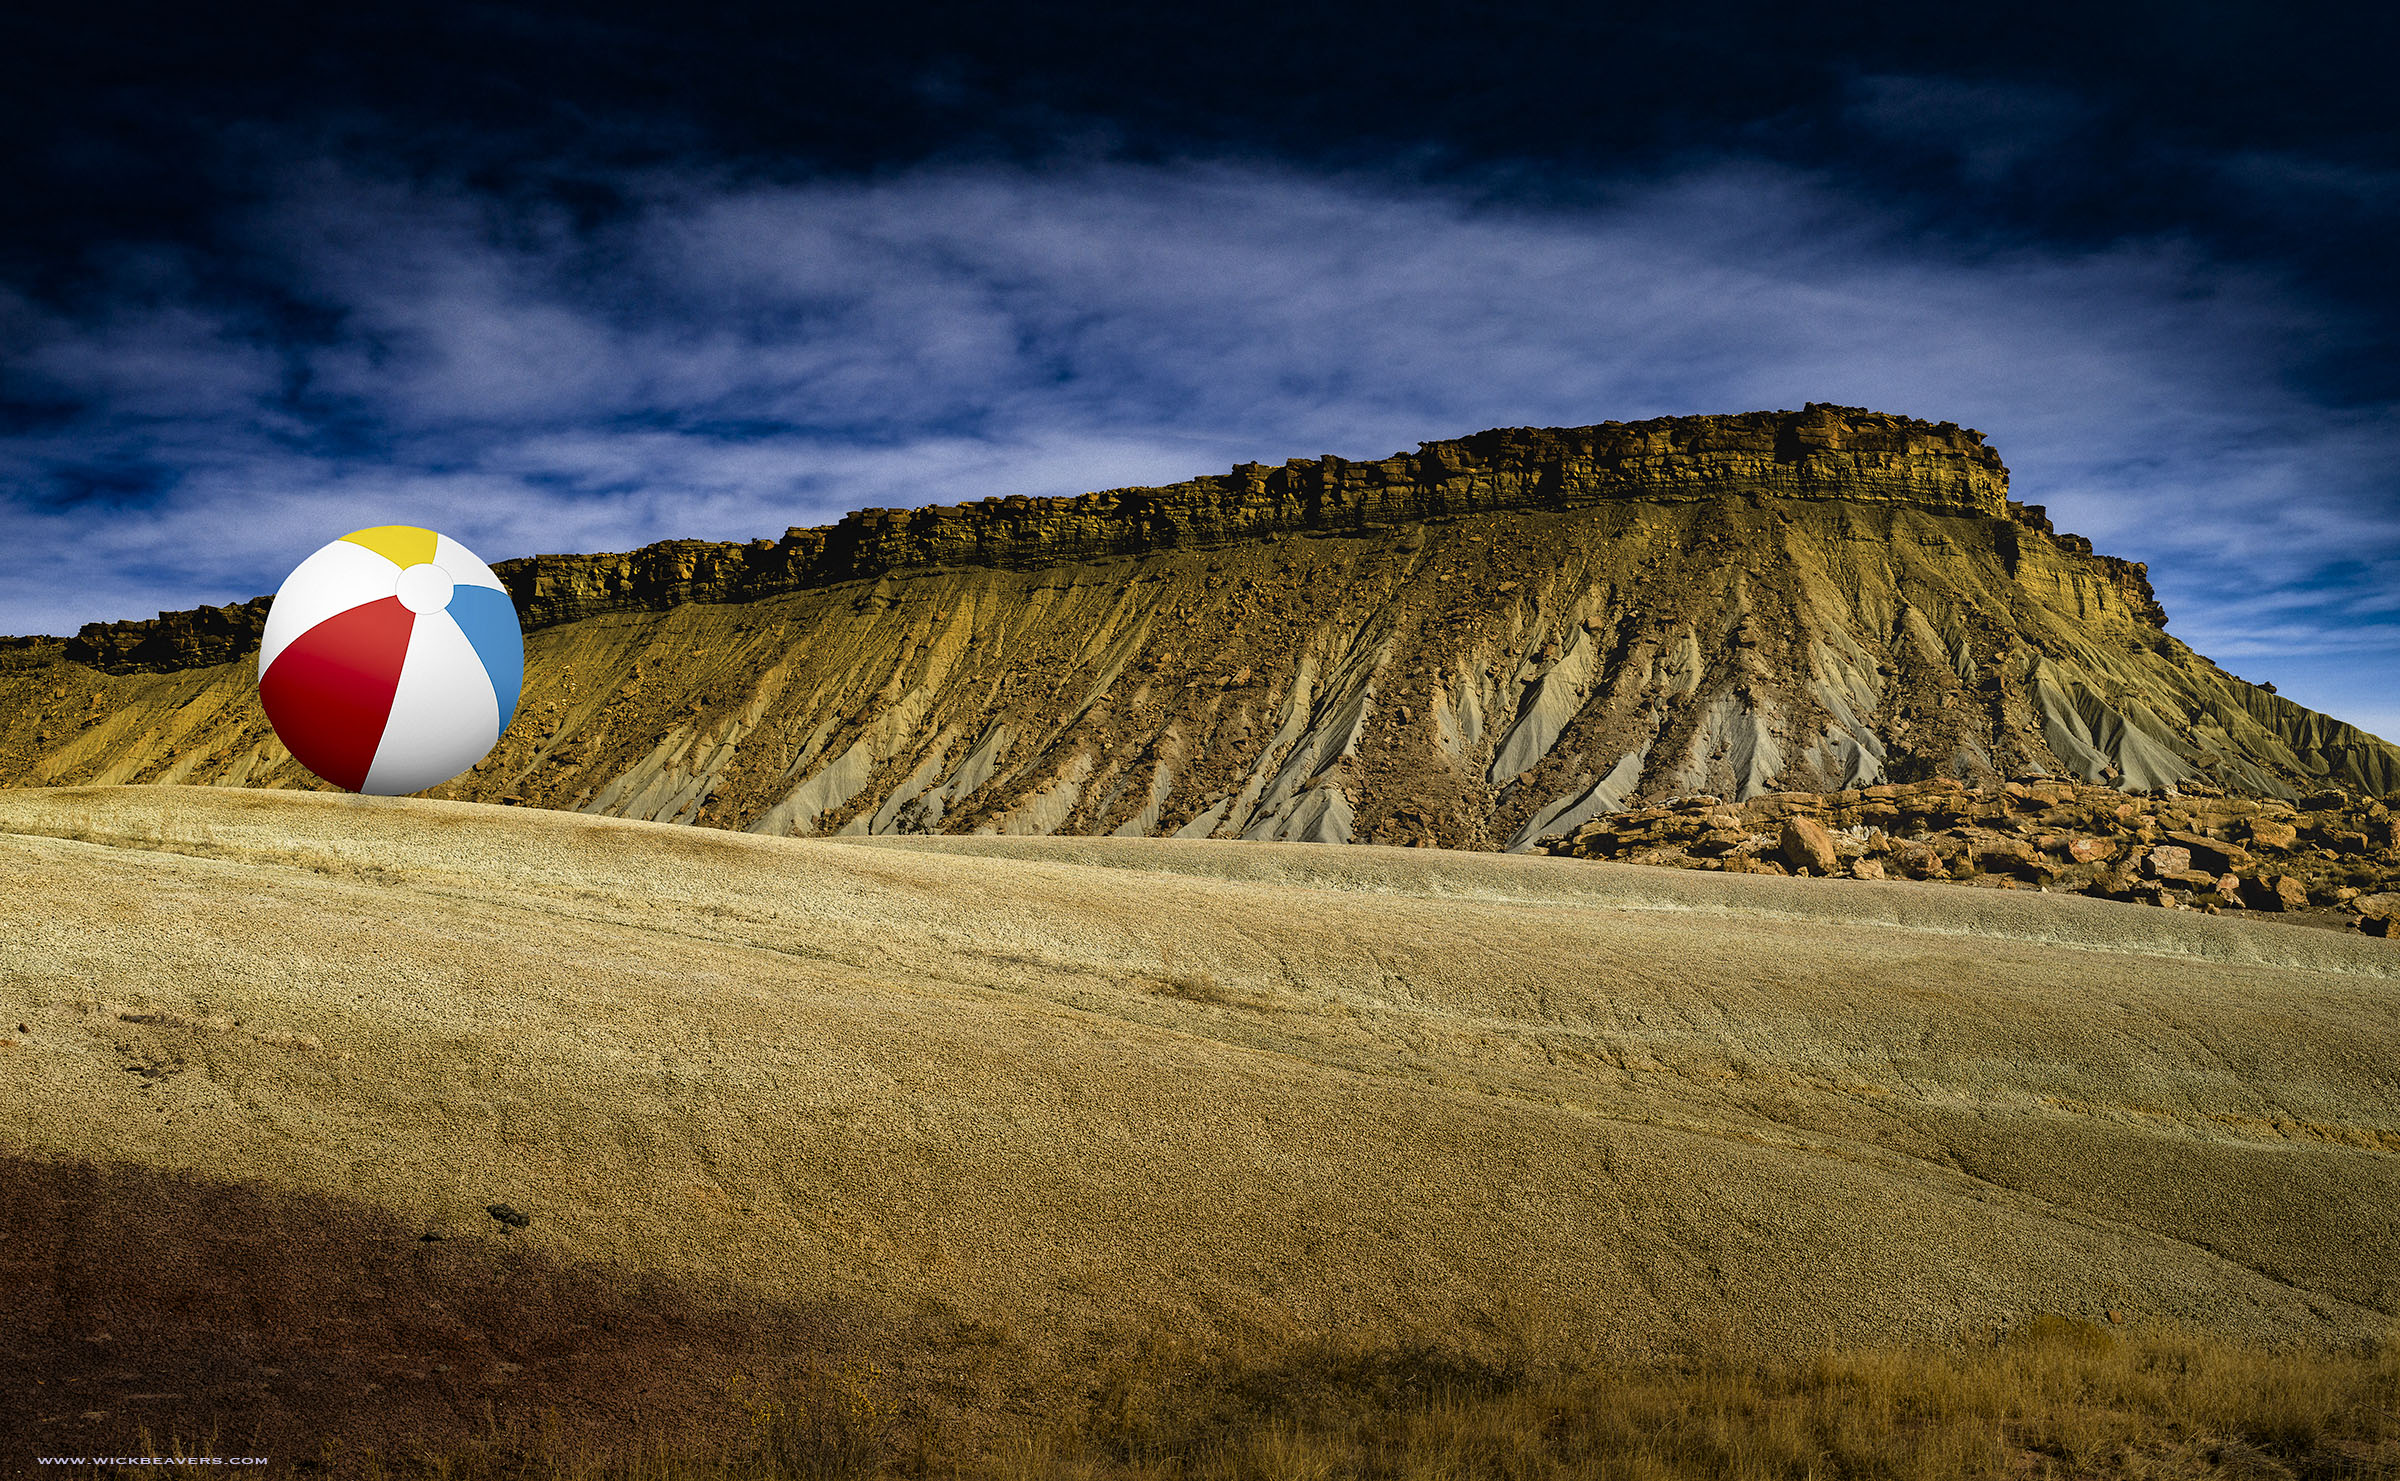 Beach Ball Waterpocket Fuck Trump Fold Capitol Reef Escalante Staircase Best Conceptual Fine art editorial Portrait Photographer Wick Beavers LA NYC LasVegas